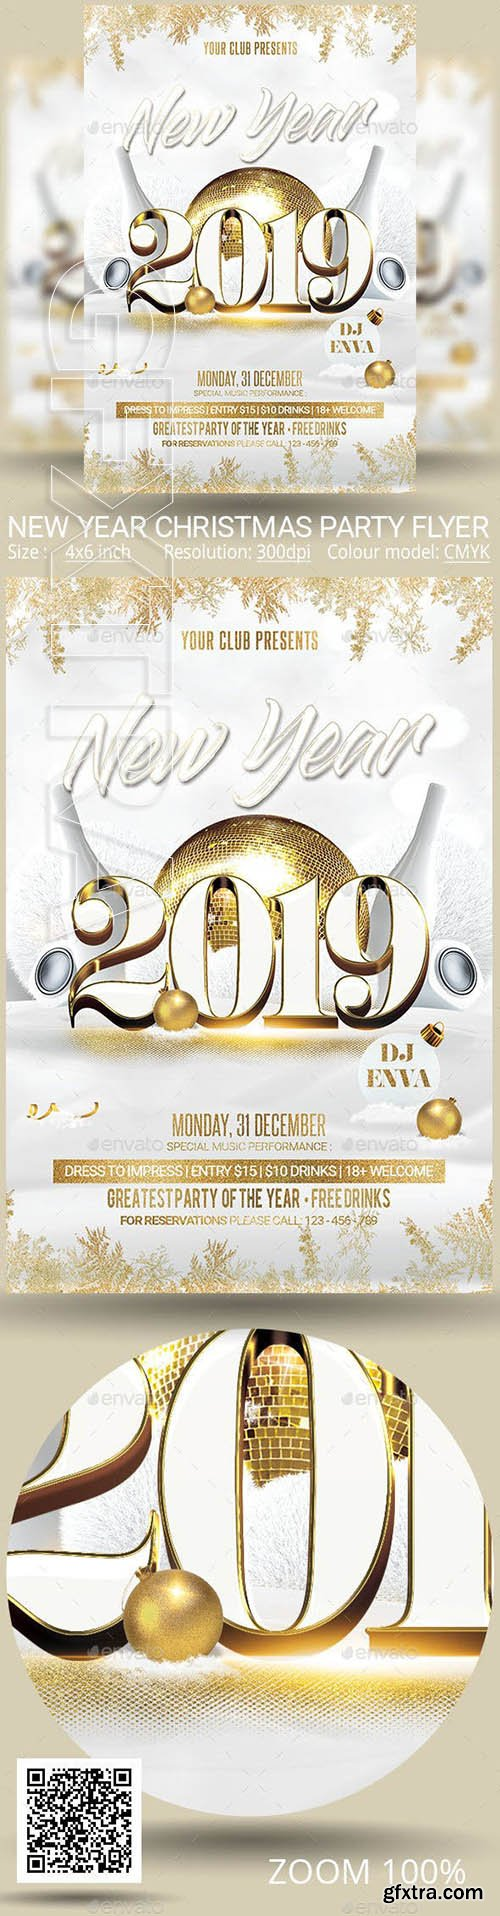 GraphicRiver - New Year Christmas Party Flyer 22992449